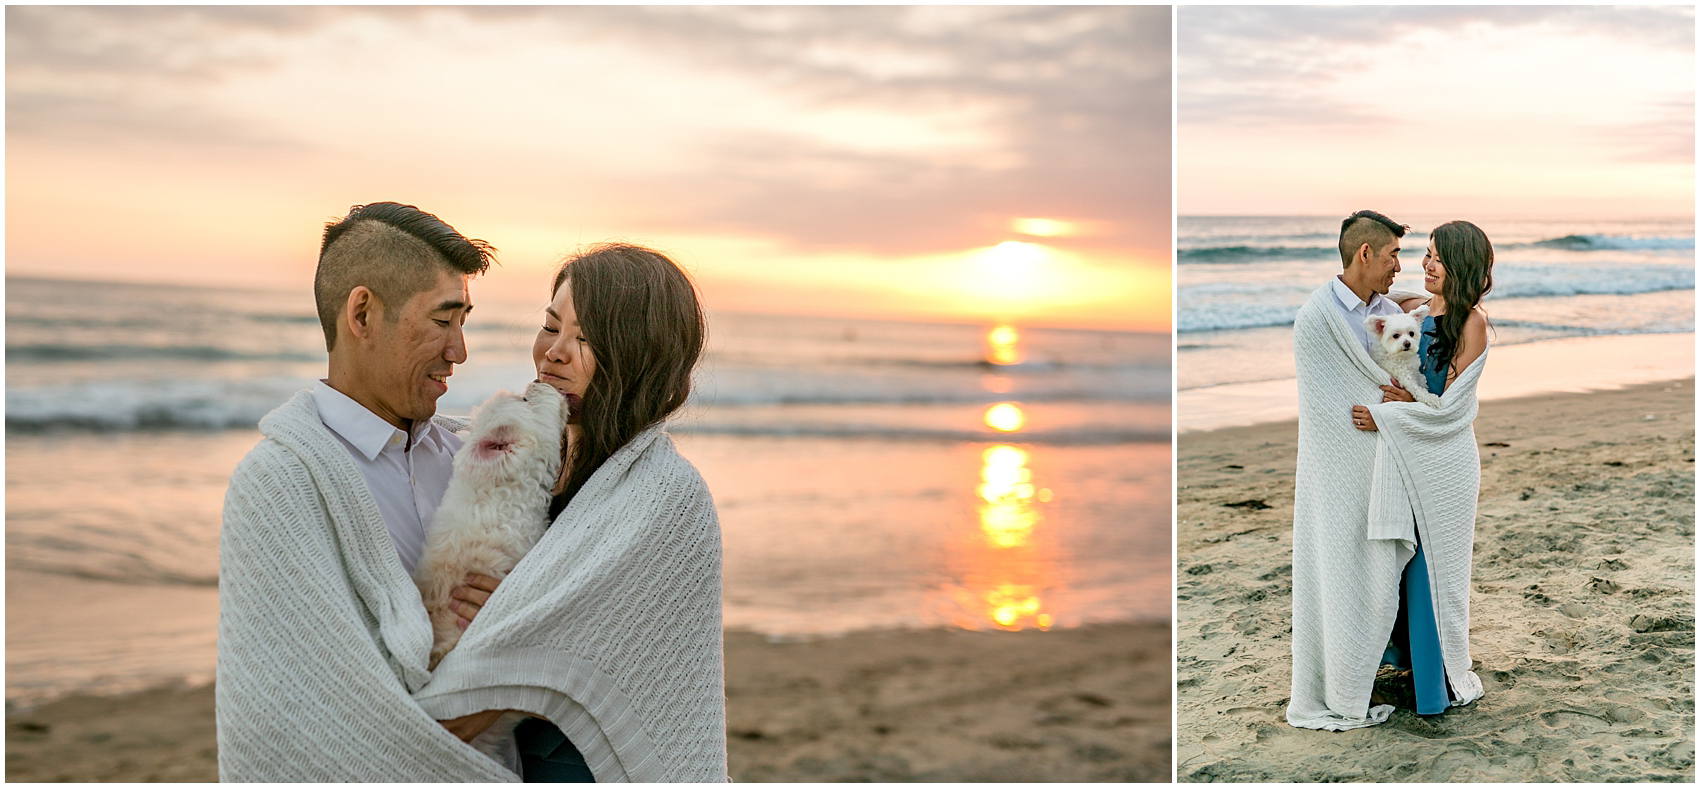 Newport Beach Engagement Photography Smetona Photo Bonnie Tim-0022.jpg